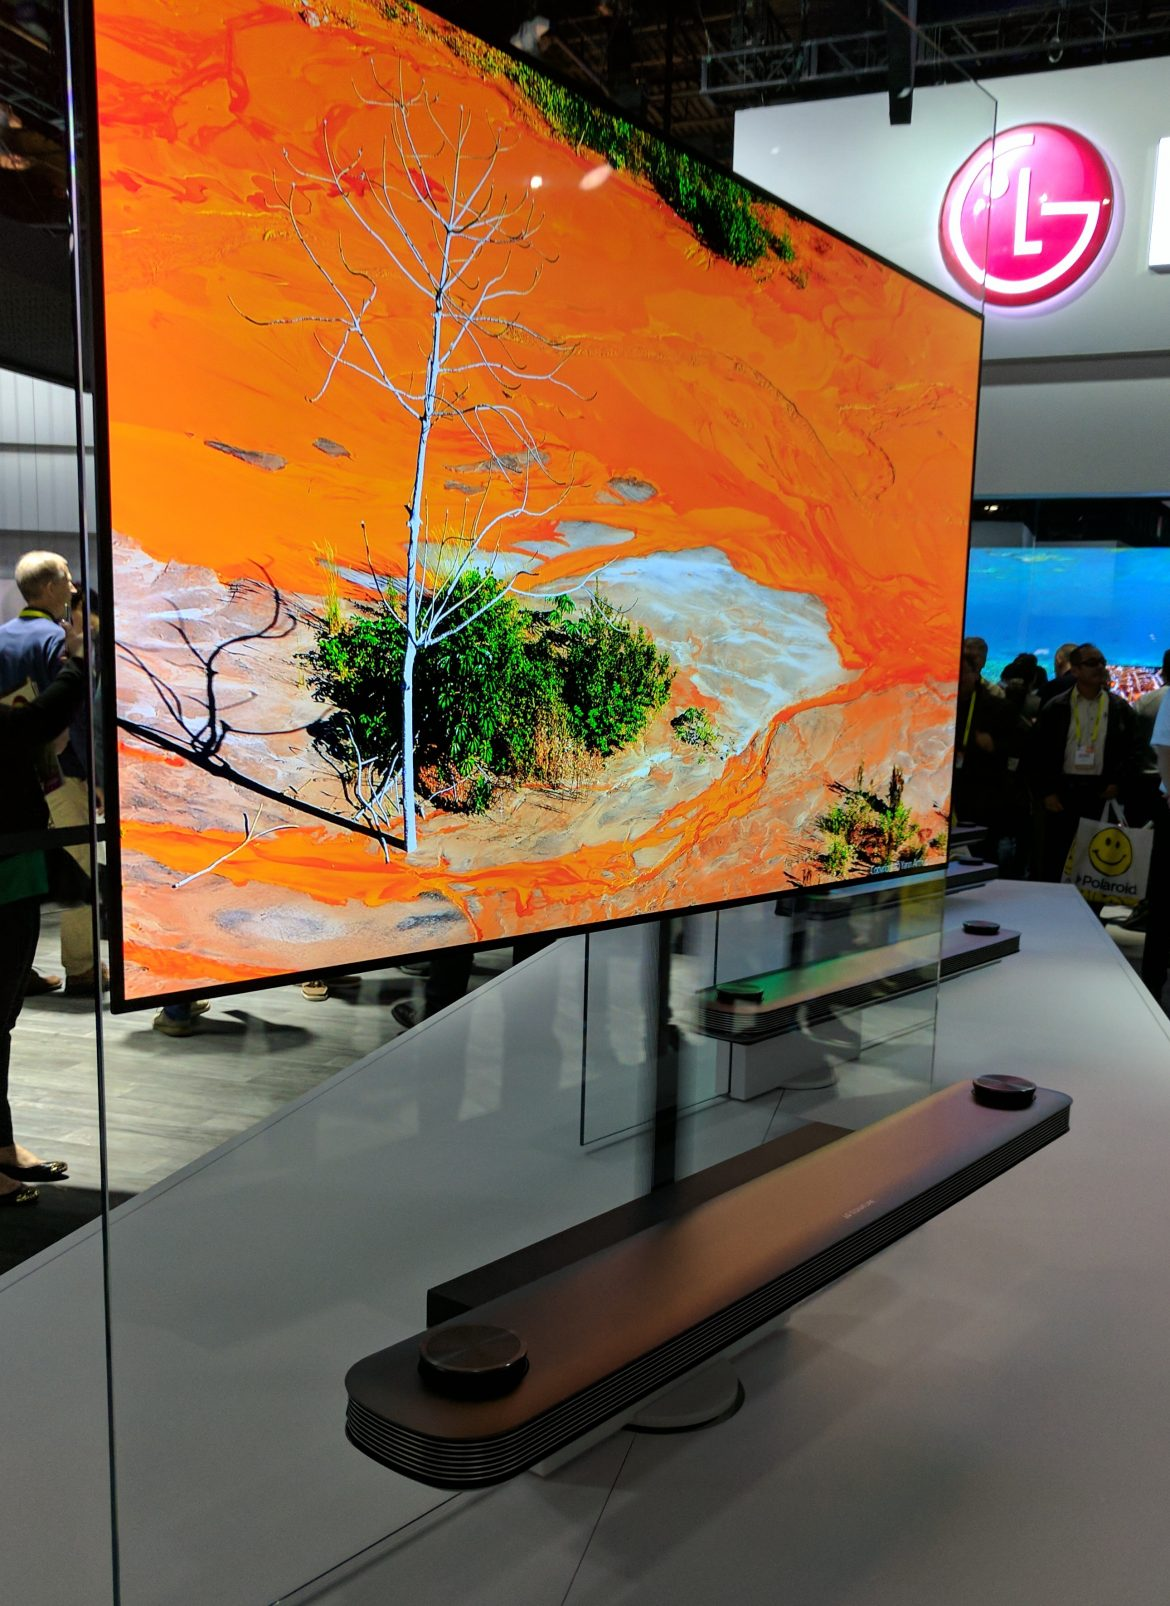 LG Wallpaper TV Front